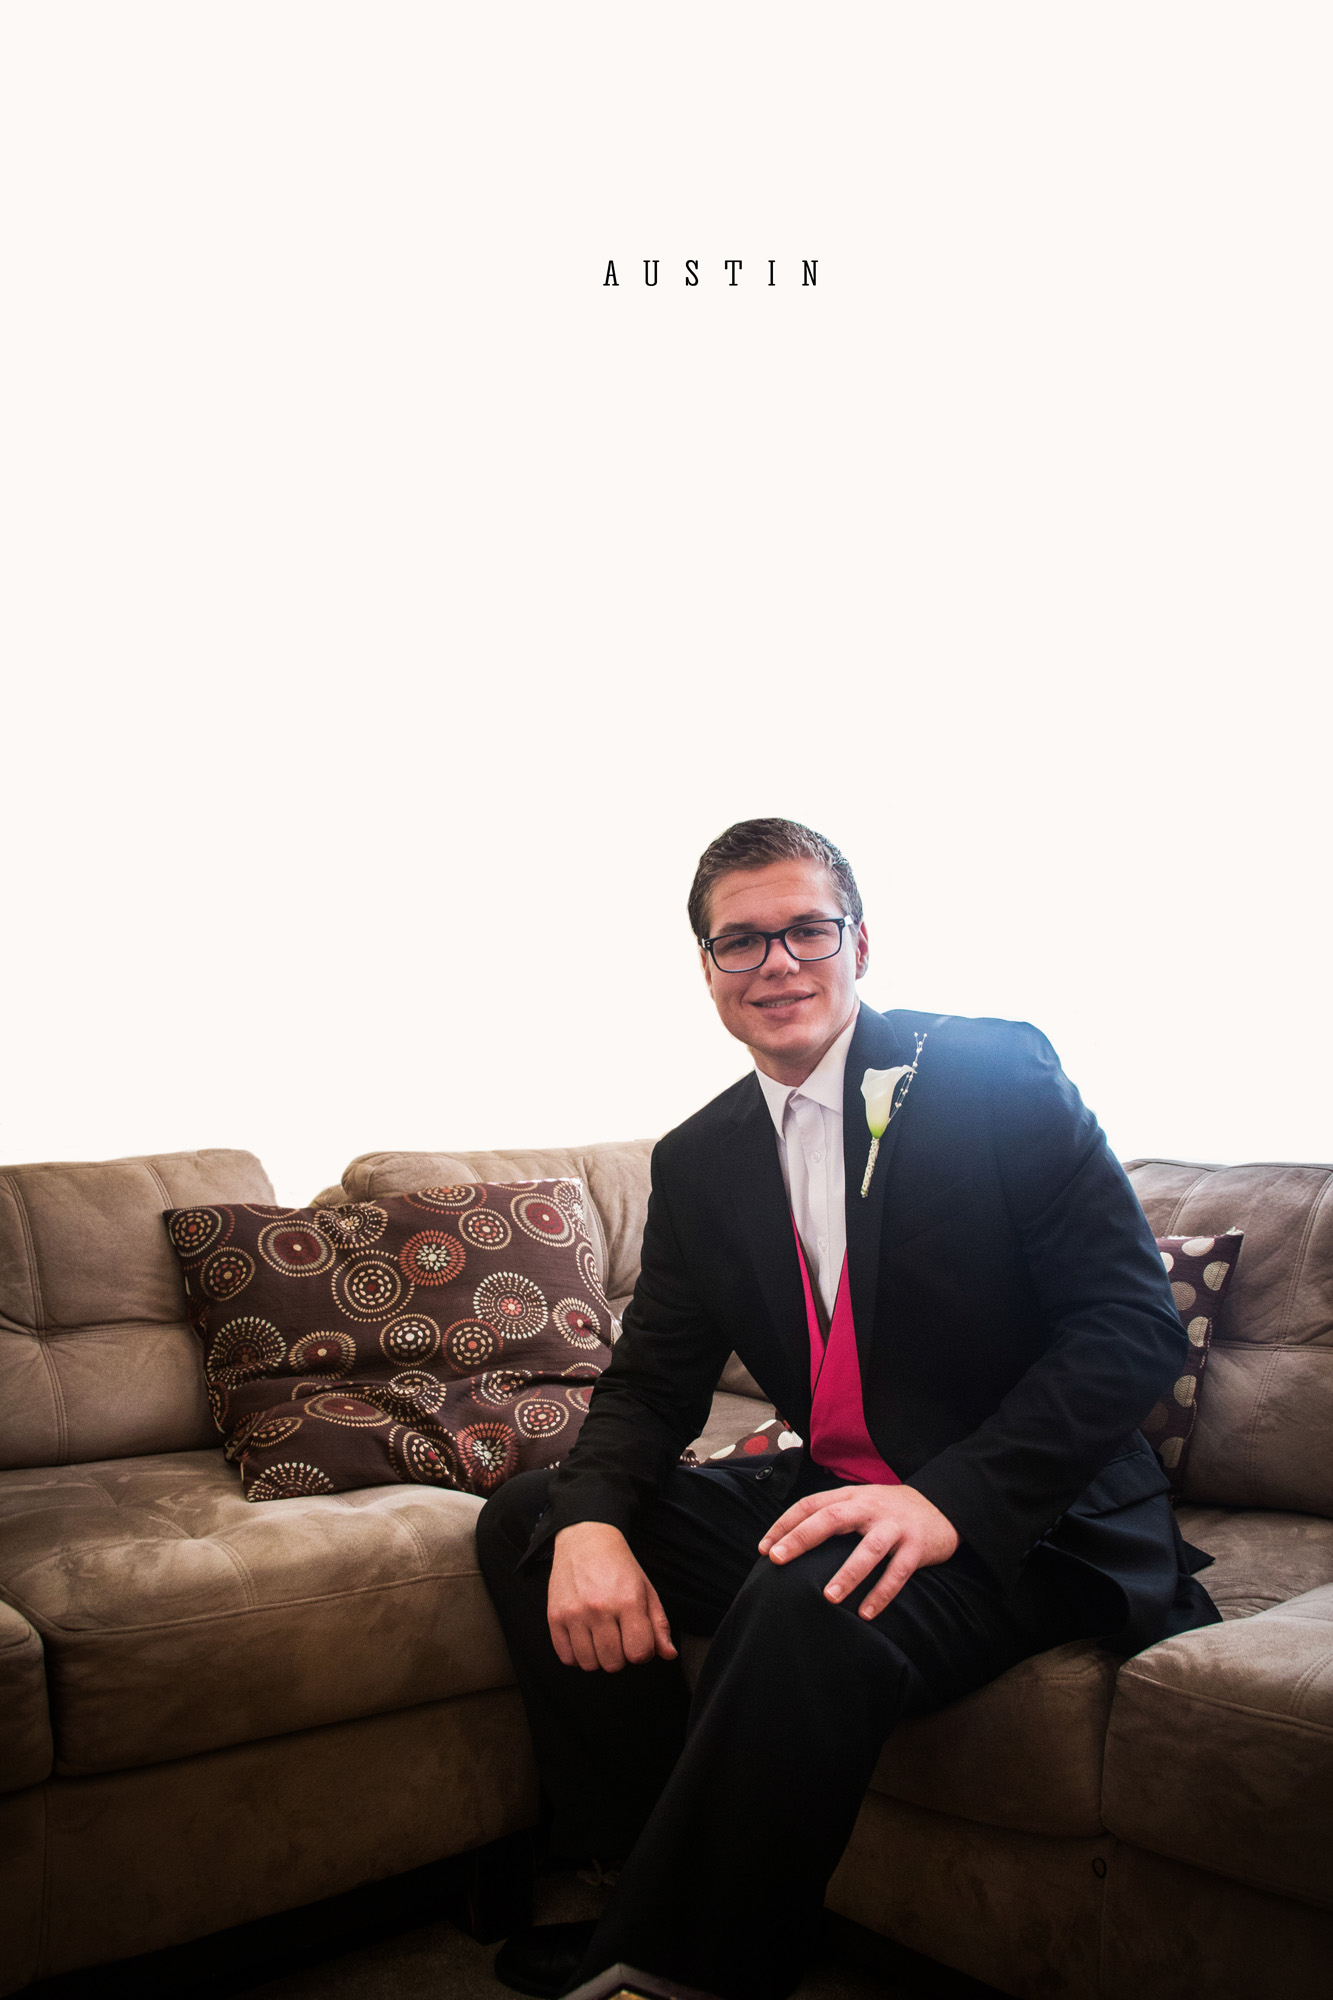 Groomsman portrait on couch